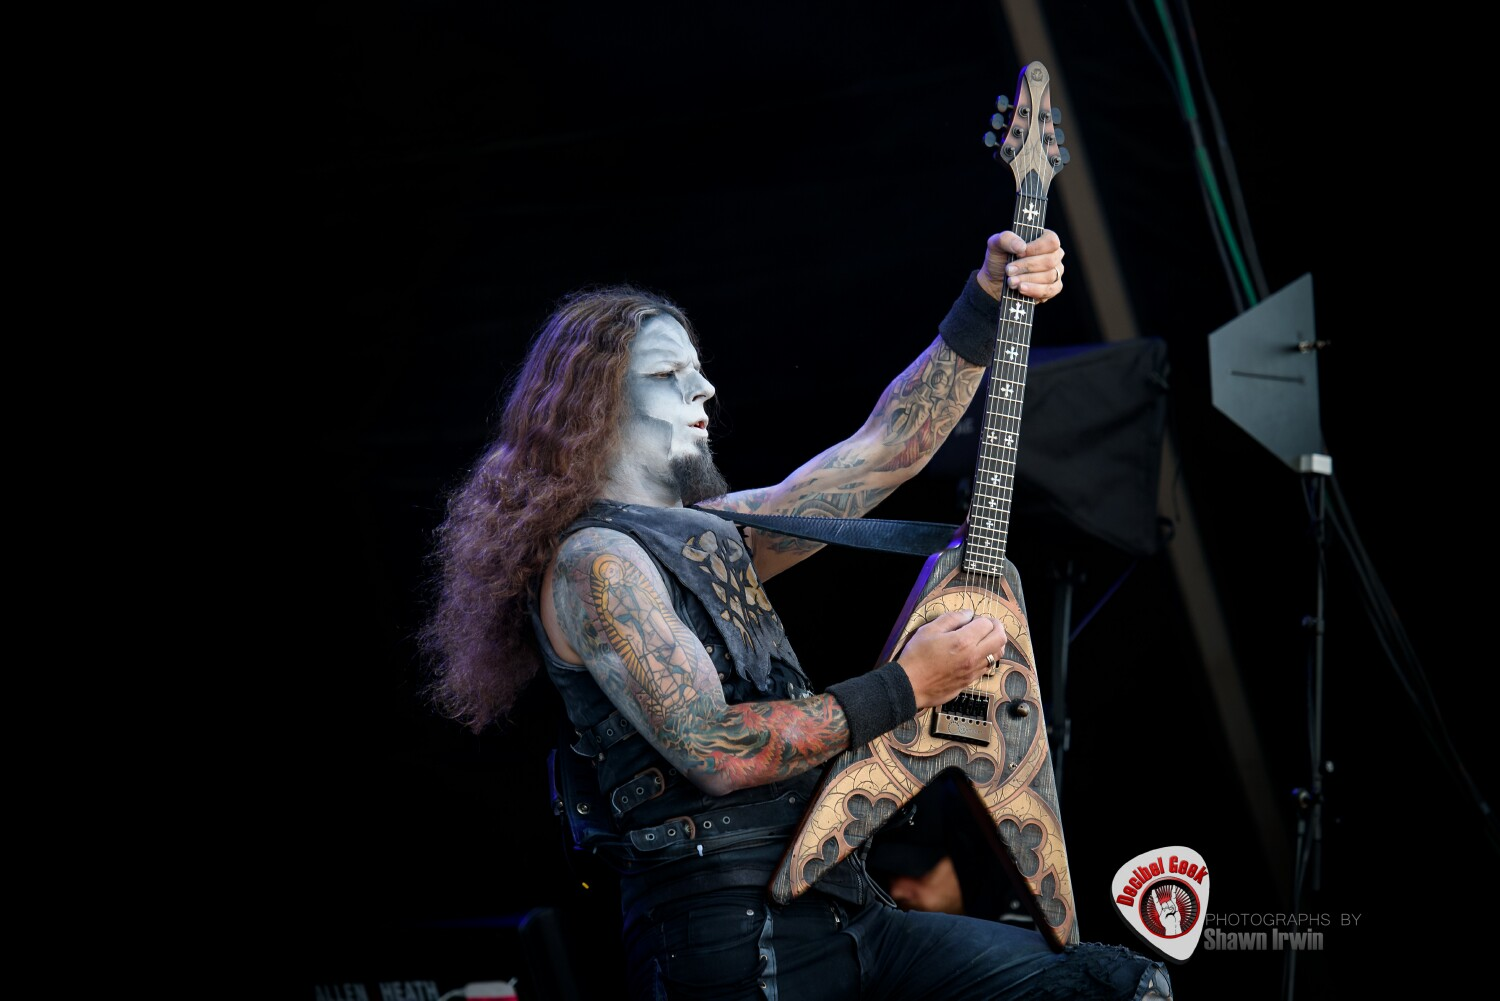 Powerwolf #7-SRF 2019-Shawn Irwin